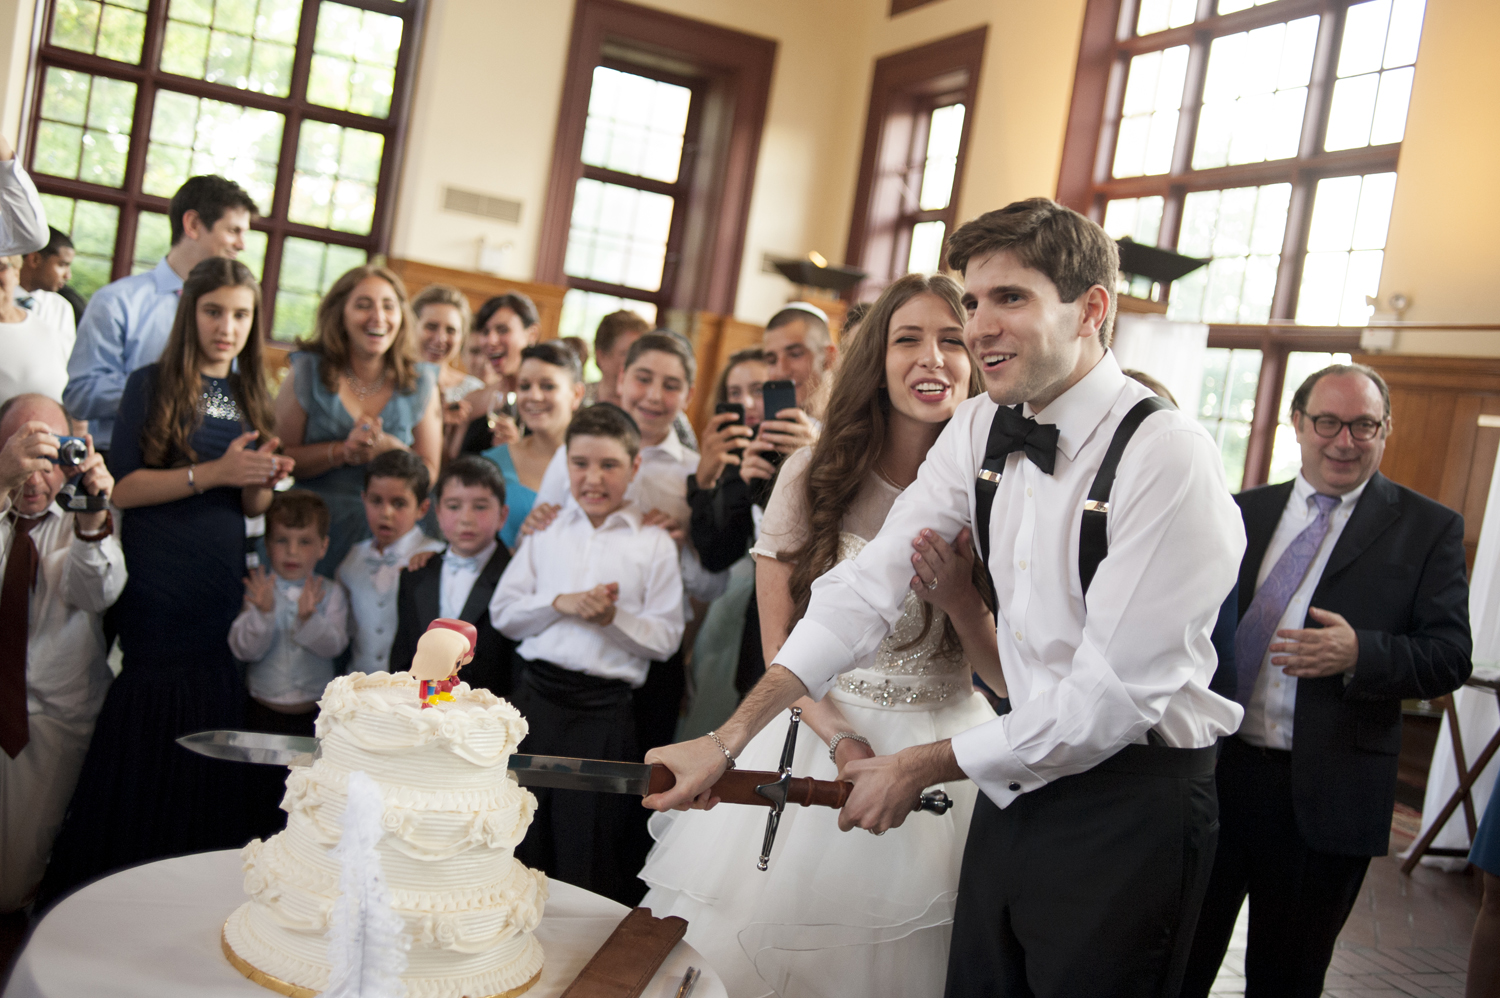 groom cuts wedding cake with sword at Celebrate at Snug Harbor